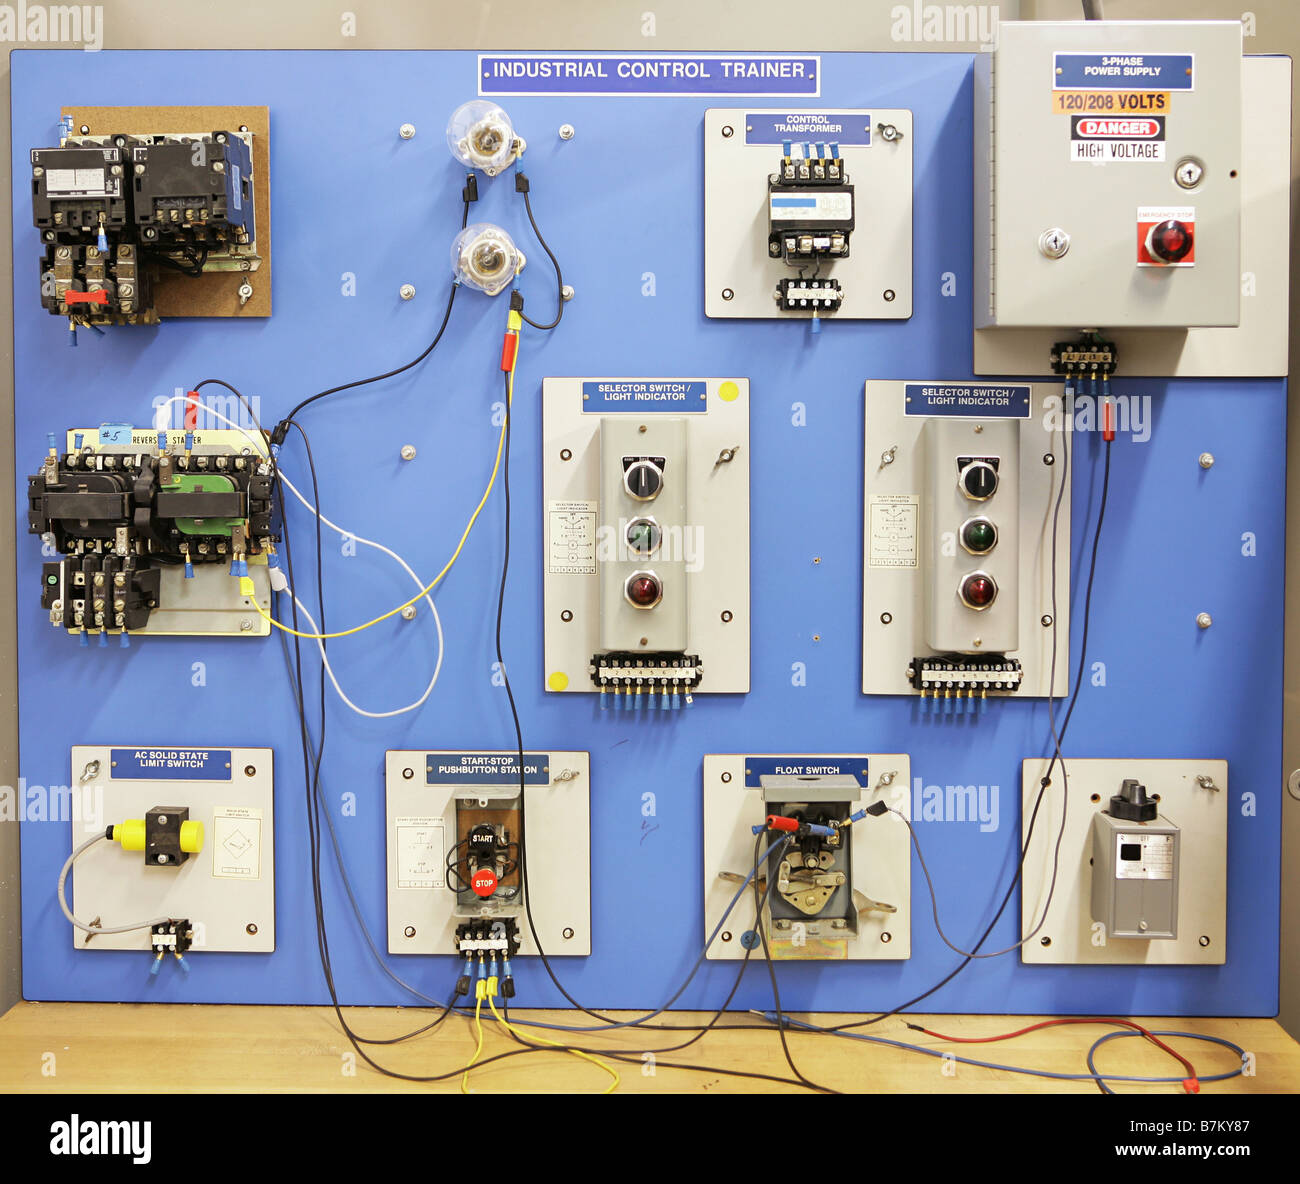 an industrial motor control training panel used in adult and stock heating control wiring training control wiring training #5